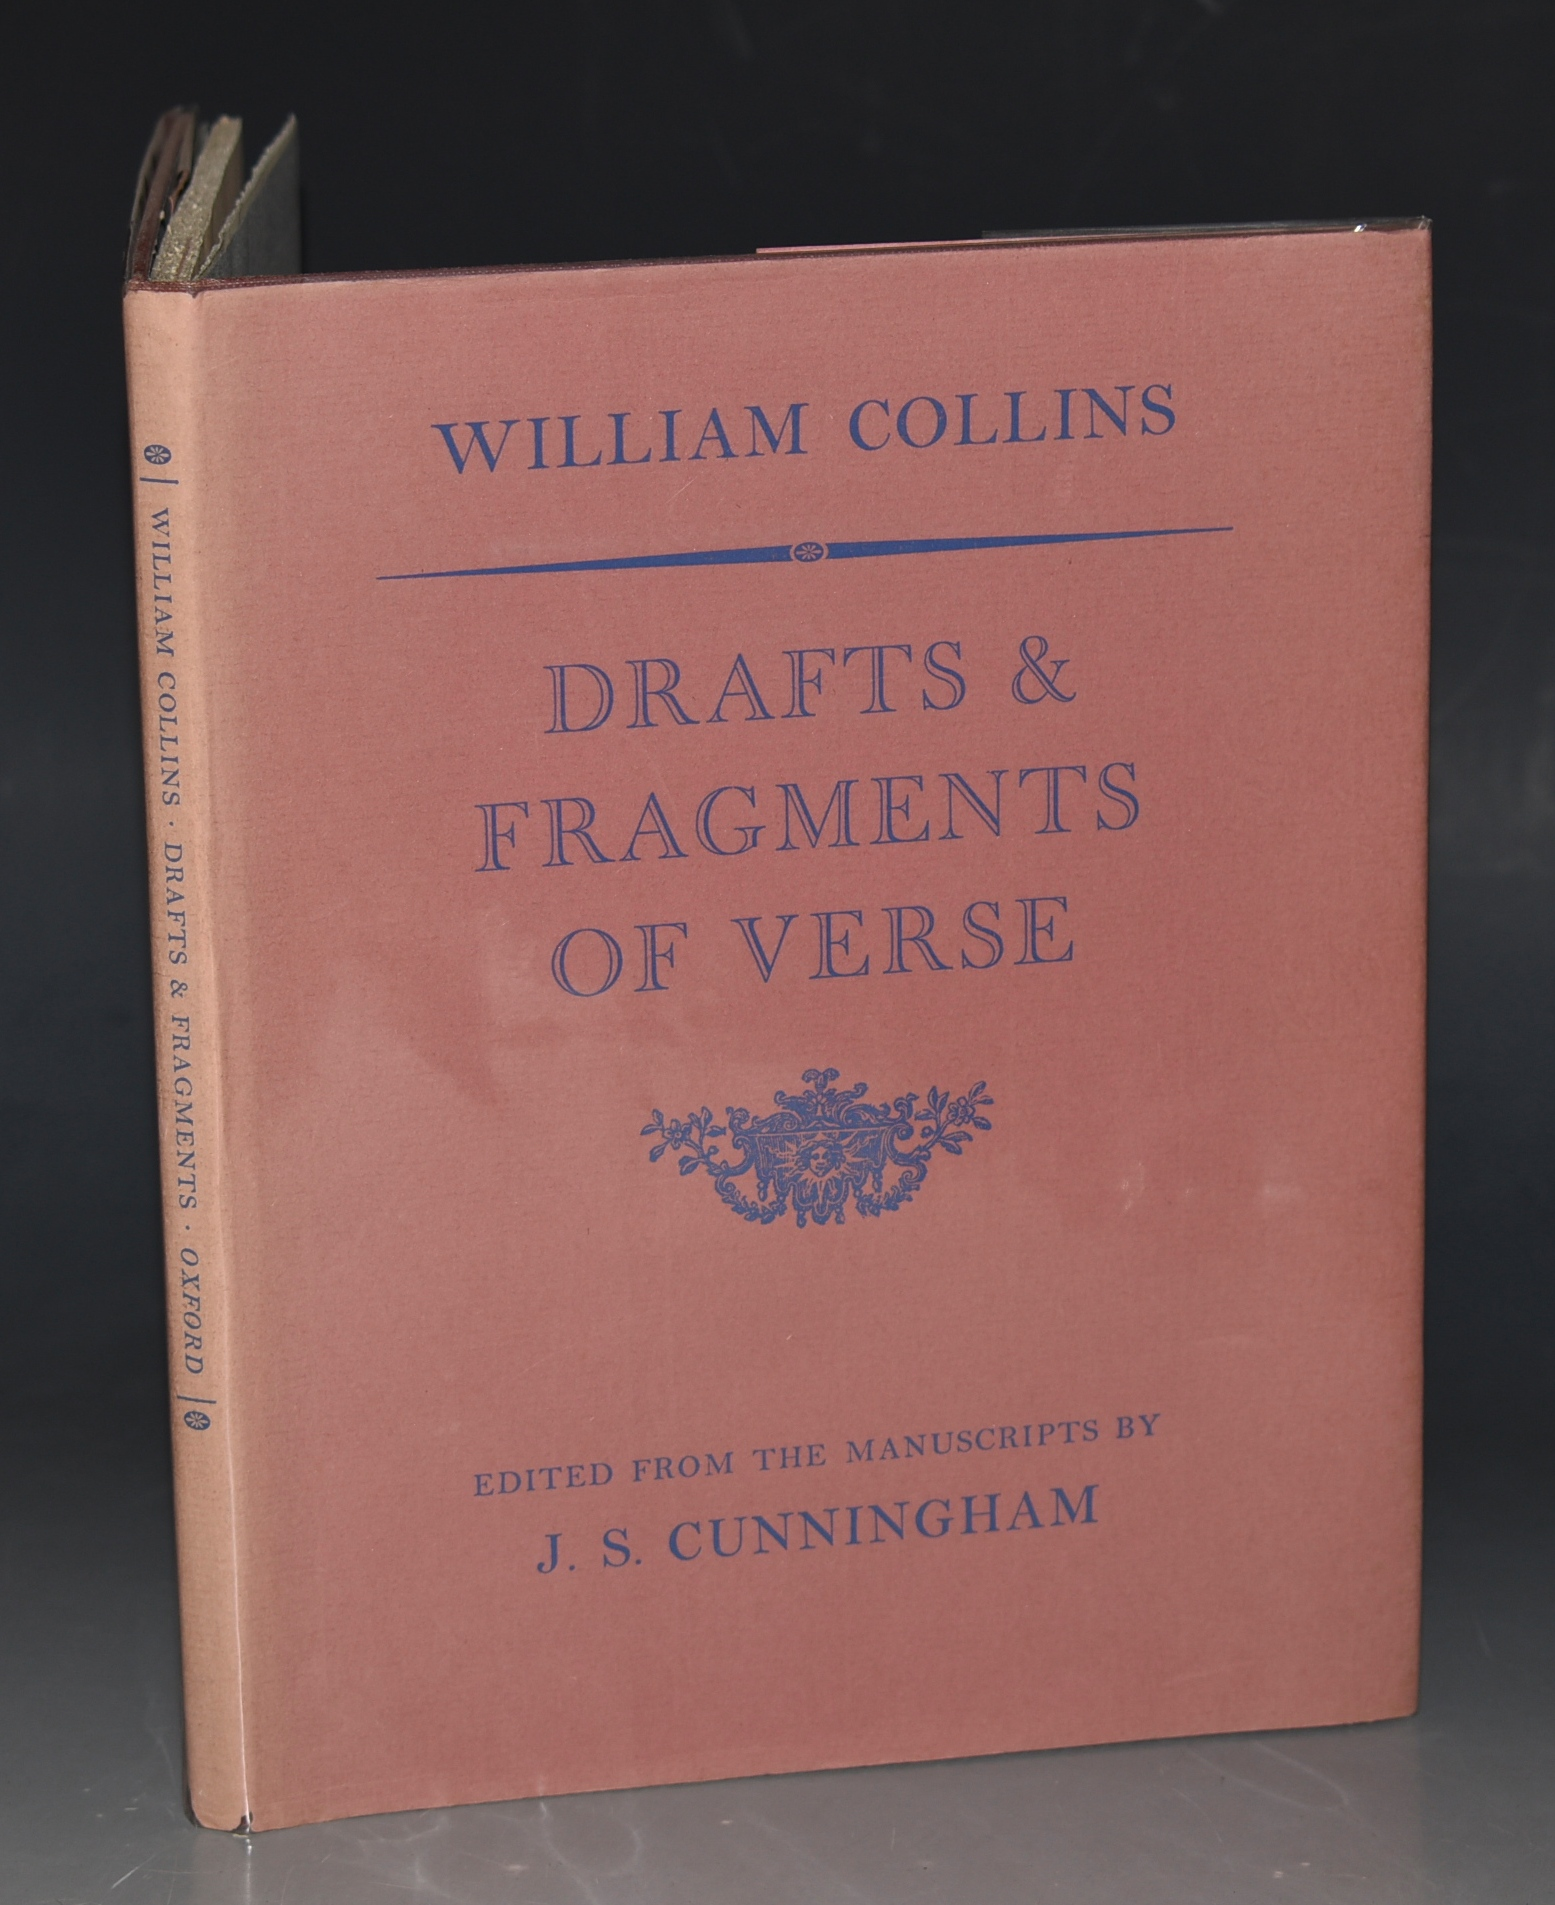 Image for Drafts & Fragments of Verse. Edited from the Manuscripts by J. S. Cunningham.